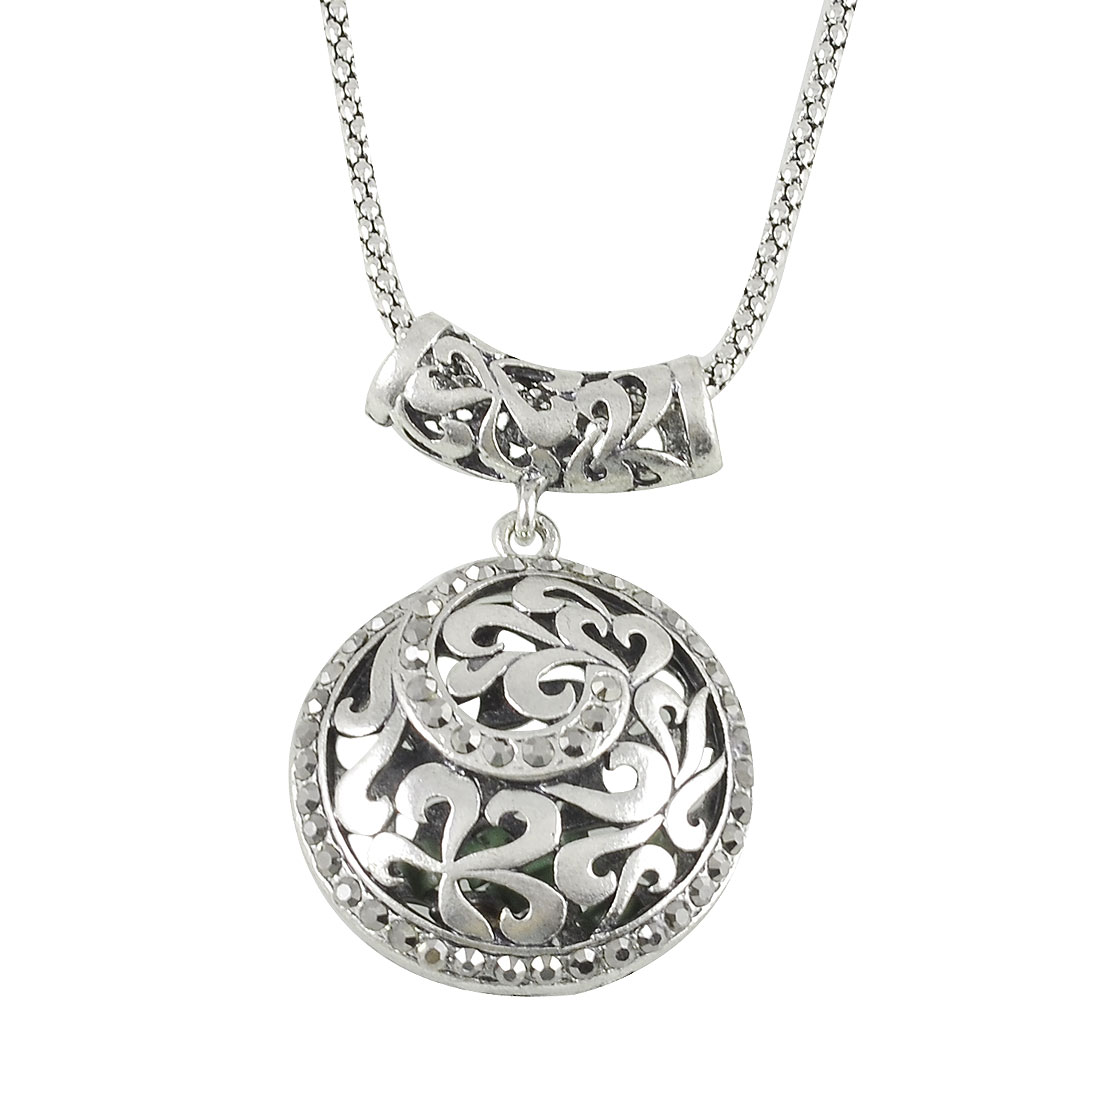 Hollow Out Round Pendant Necklace Silver Tone for Women